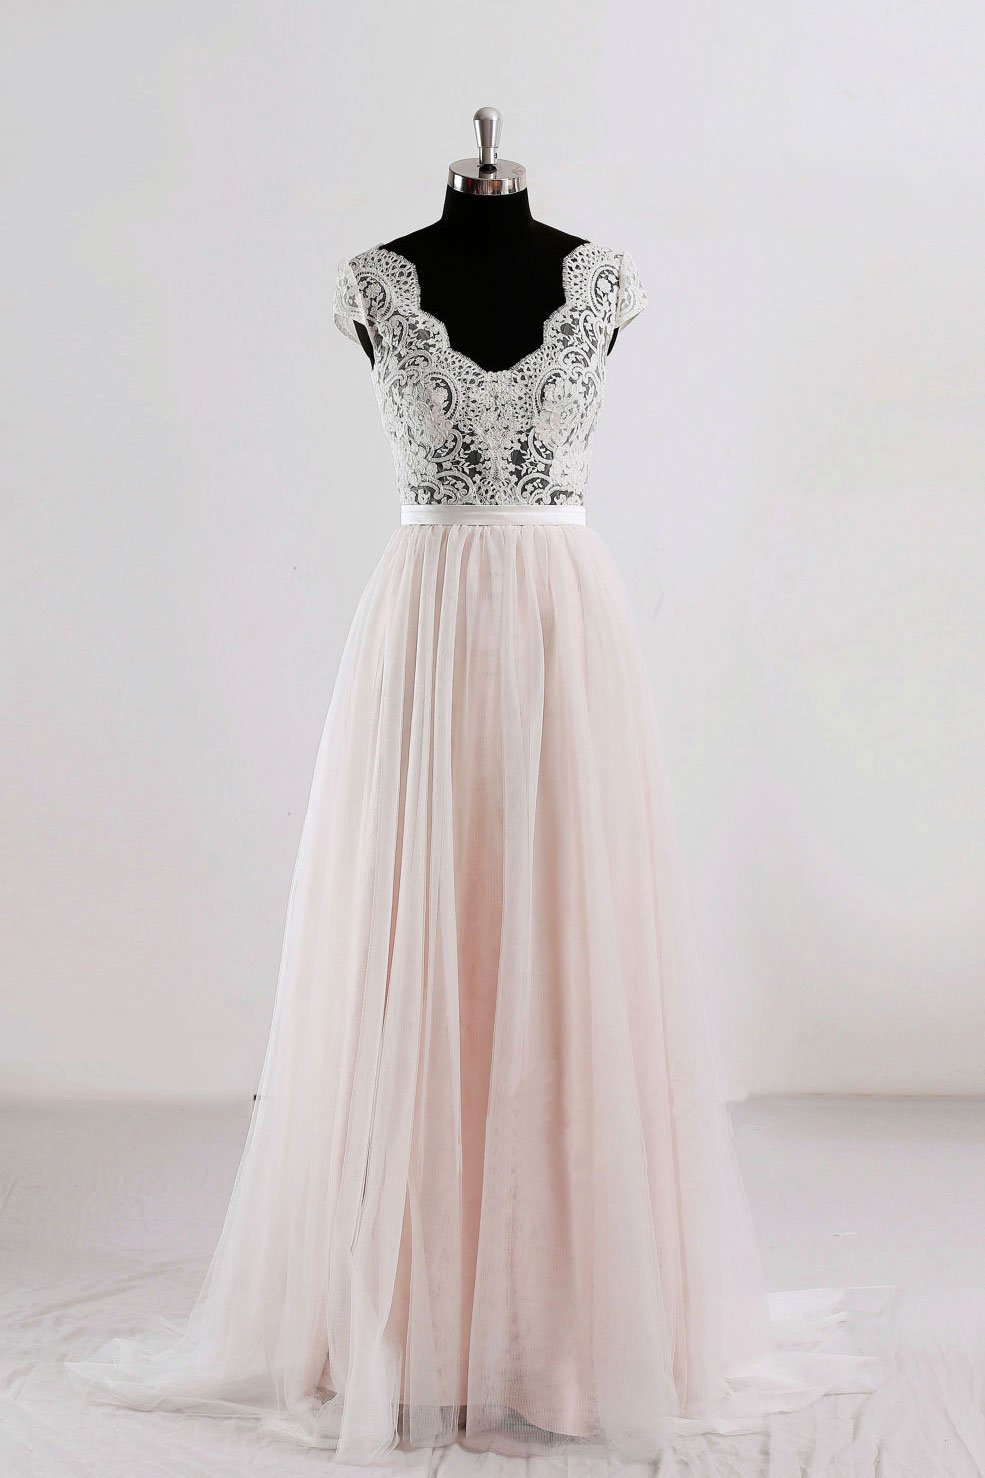 Sexy Cap Shoulder Lace Full Length Prom Dress Evening With Bow Dress Party Dress Bridesmaid Dress Wedding Occasion Dress Formal Occasion Dress